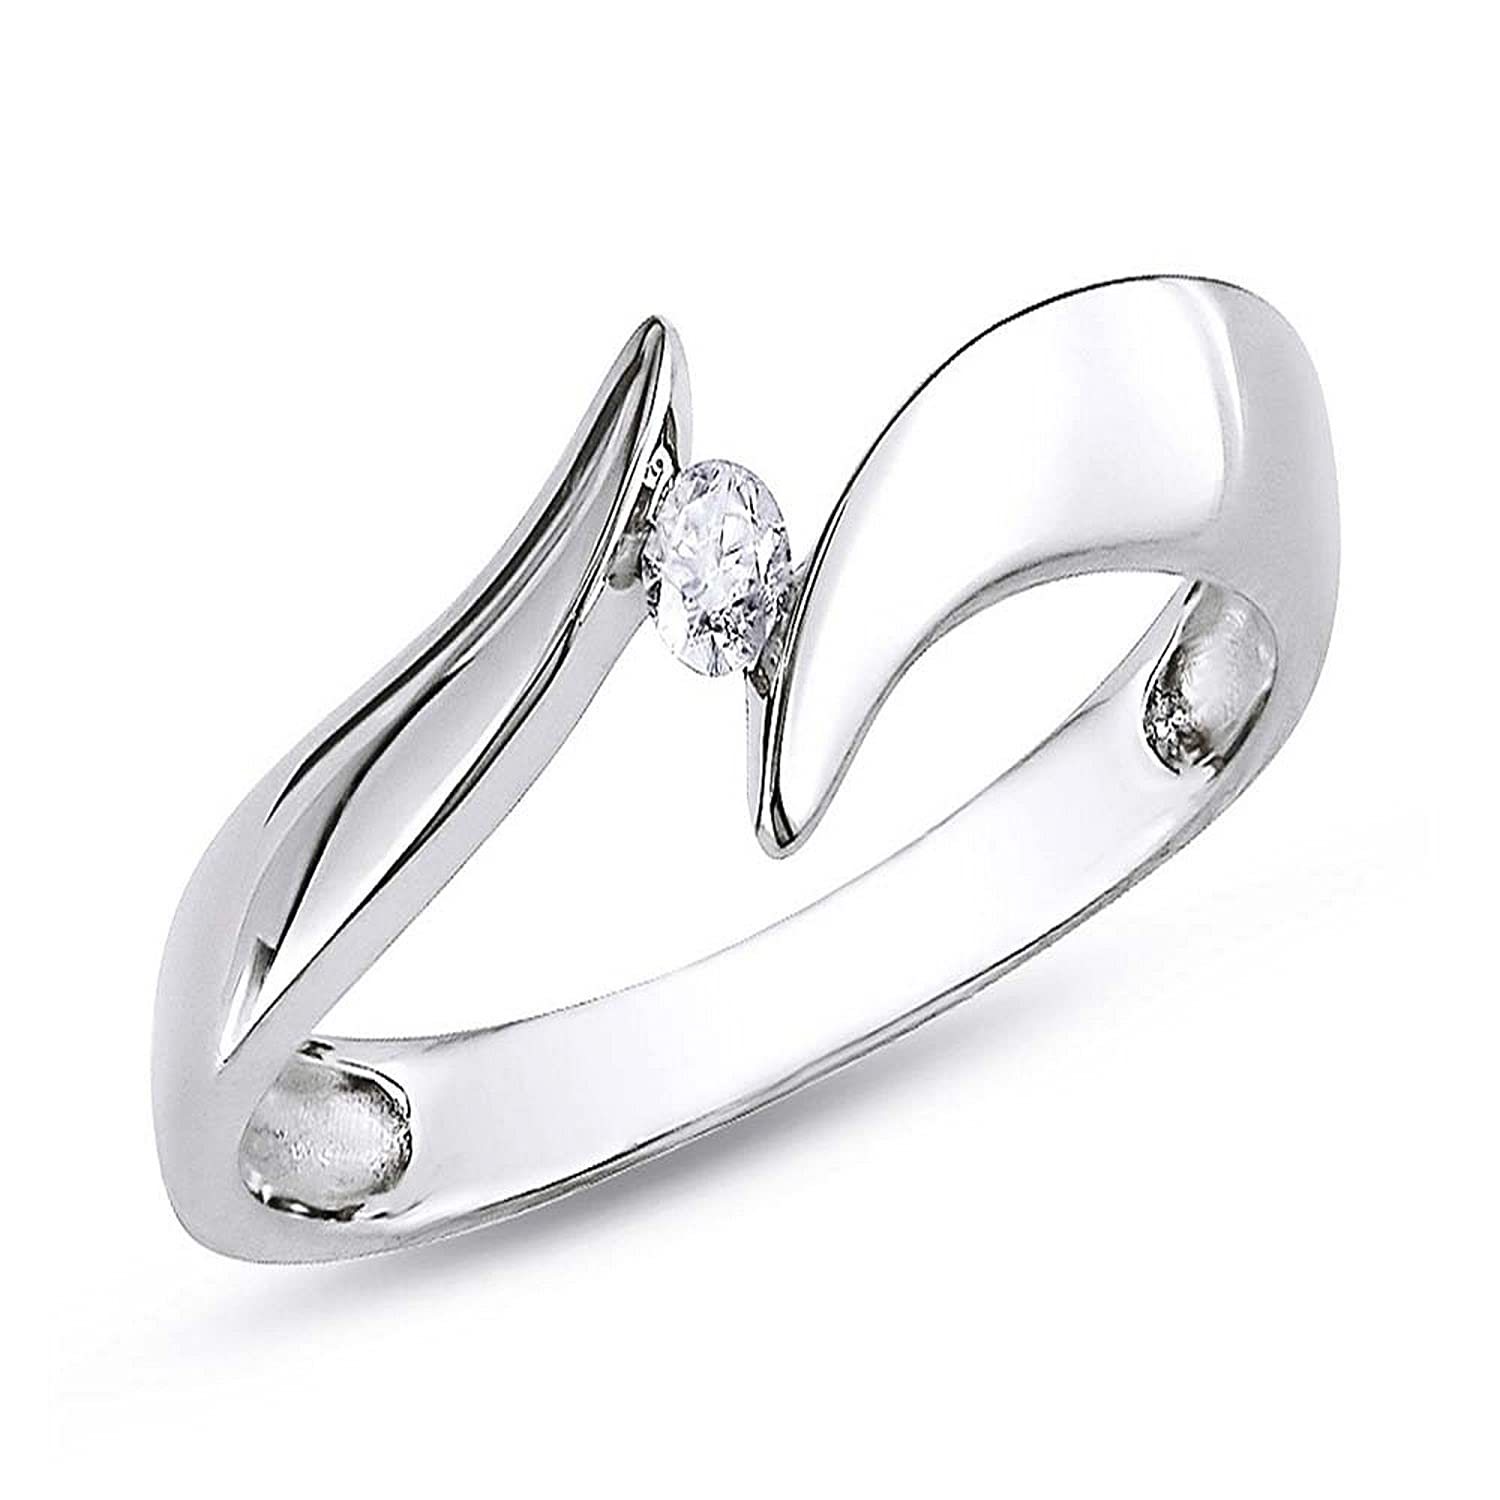 st bling ring engagement silver bridal wedding set jewellery rings rset jewelry cz solitaire